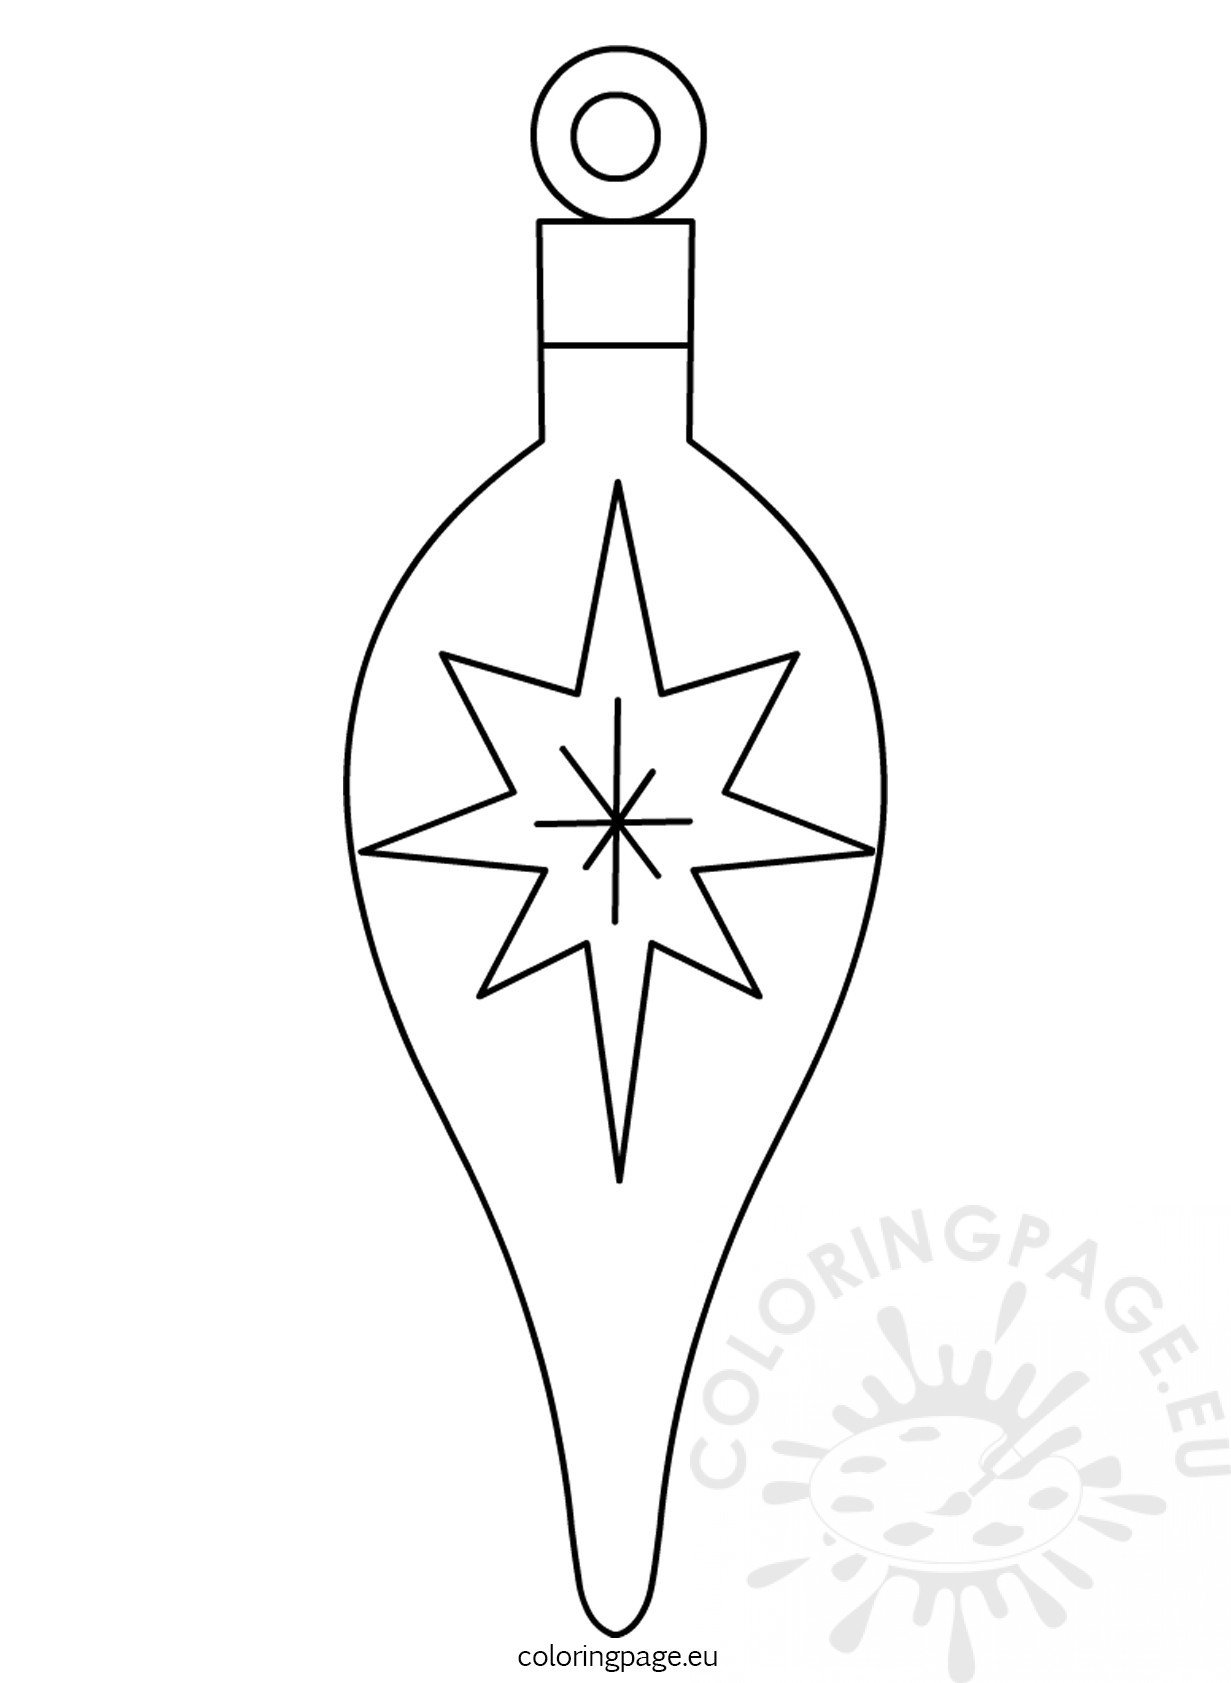 Christmas Tree Ornament Printable Coloring Page